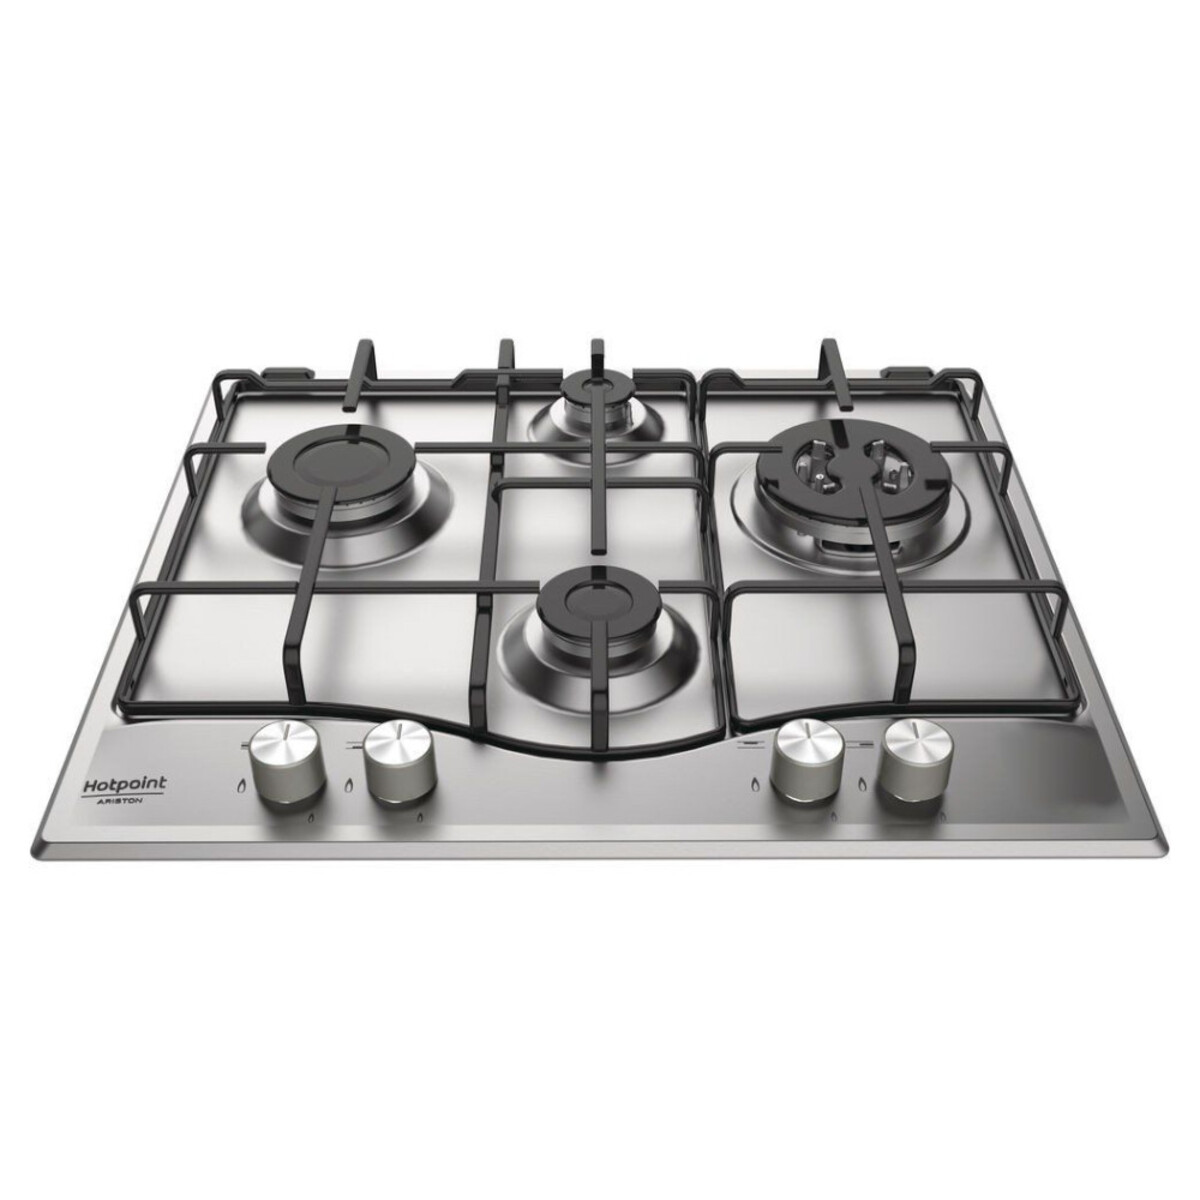 8050147005712-hotpoint-piano-cottura-gas-pcn-642-t-ix-ha-4-fuochi-stainless-steel-colore-inox